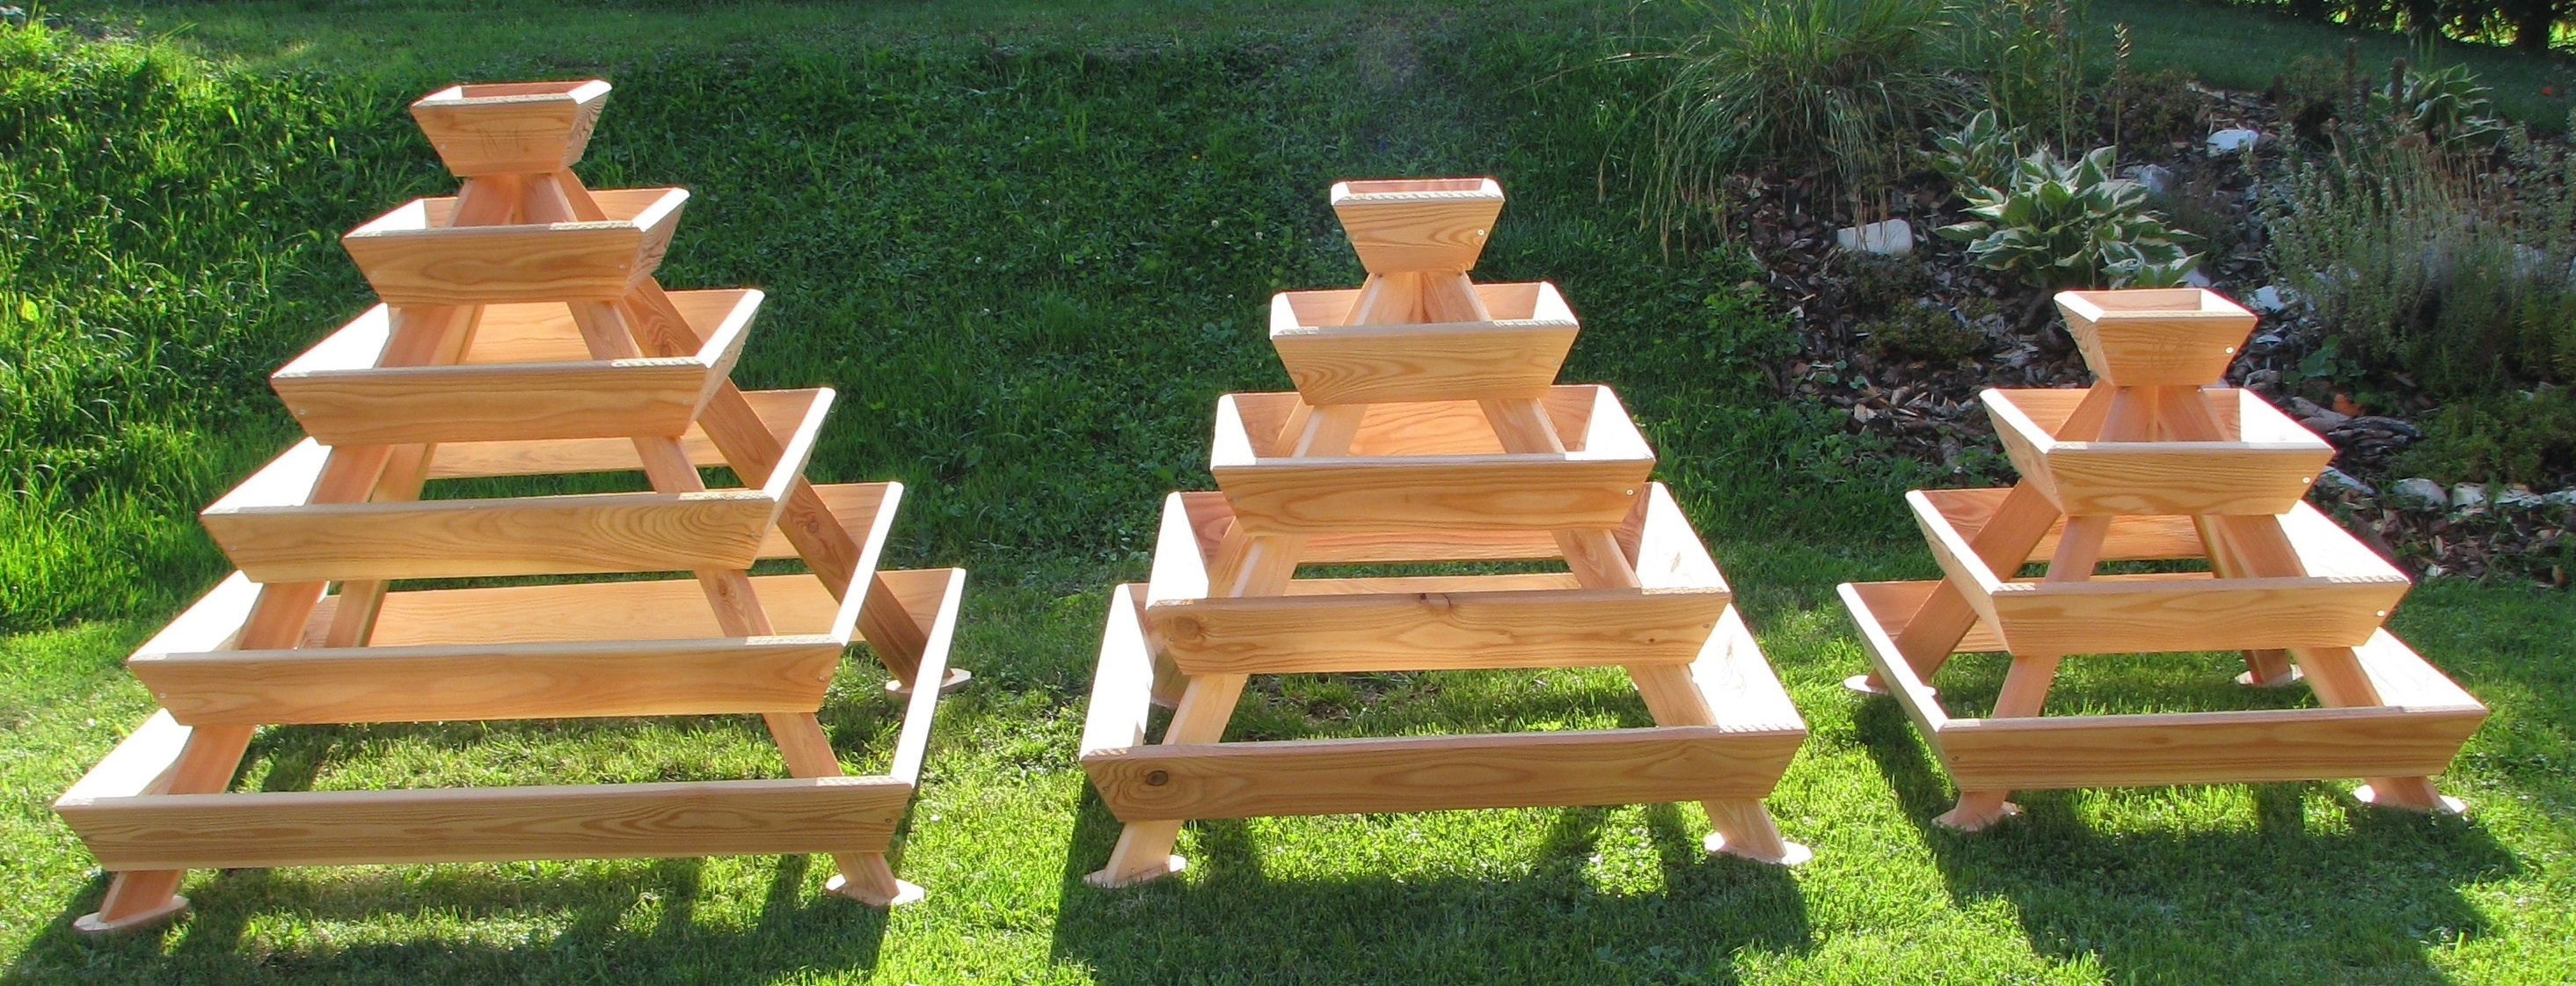 Hochbeet Pyramide Holz Oase Hochbeete